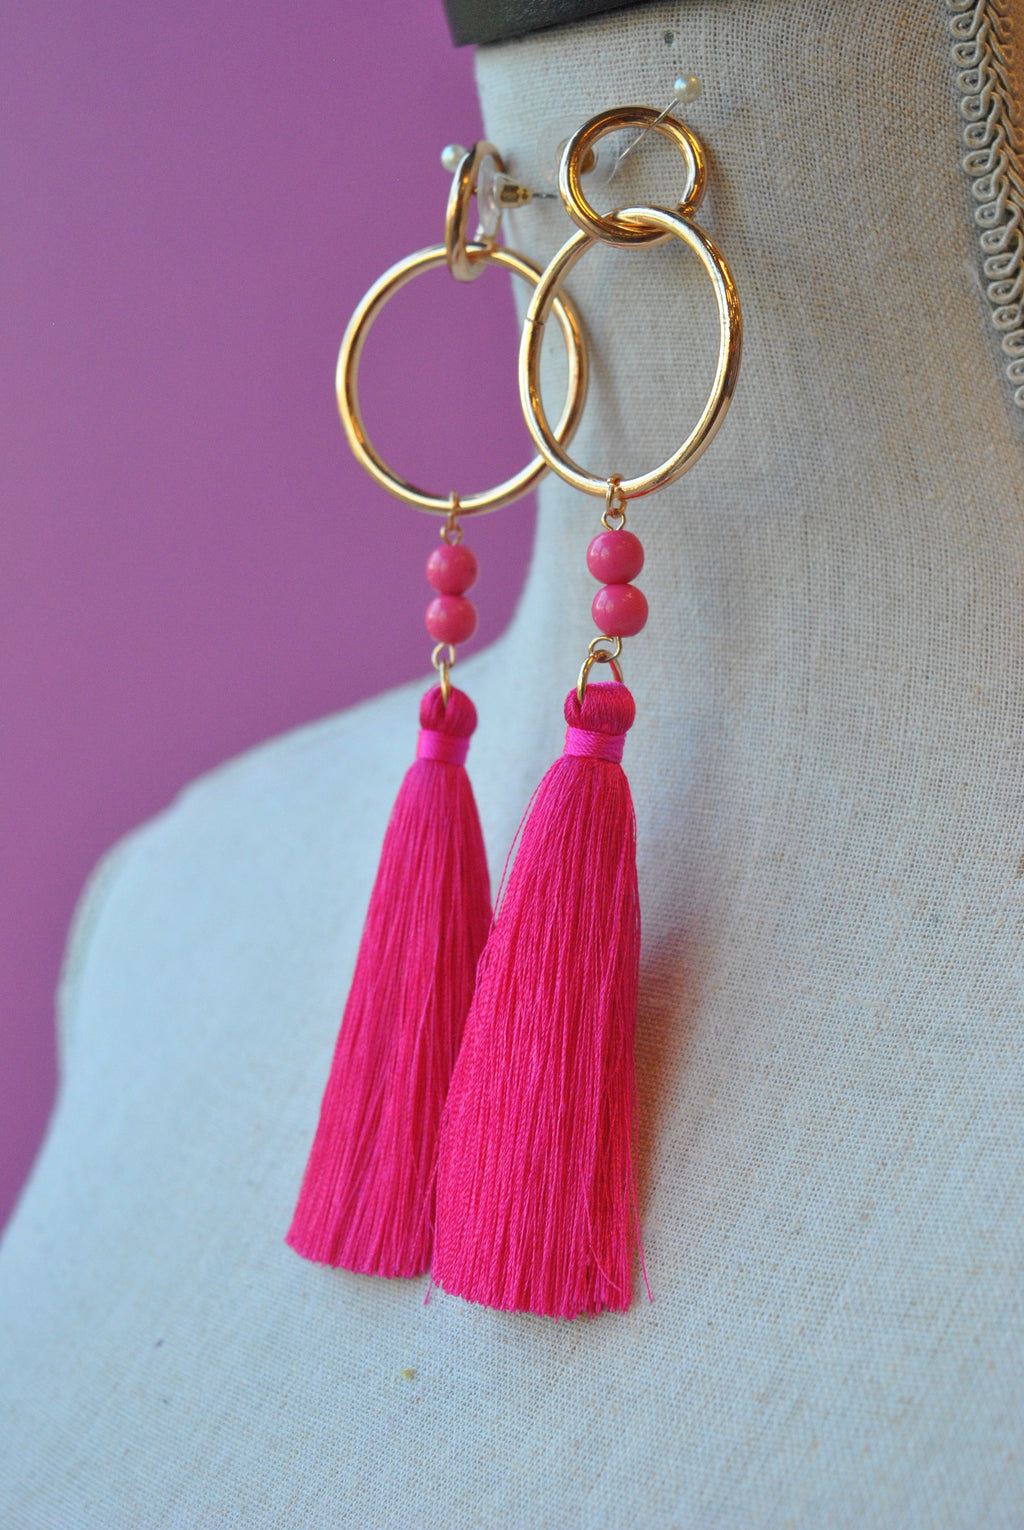 FASHION COLLECTION - HOT PINK FRINGE LONG EARRINGS